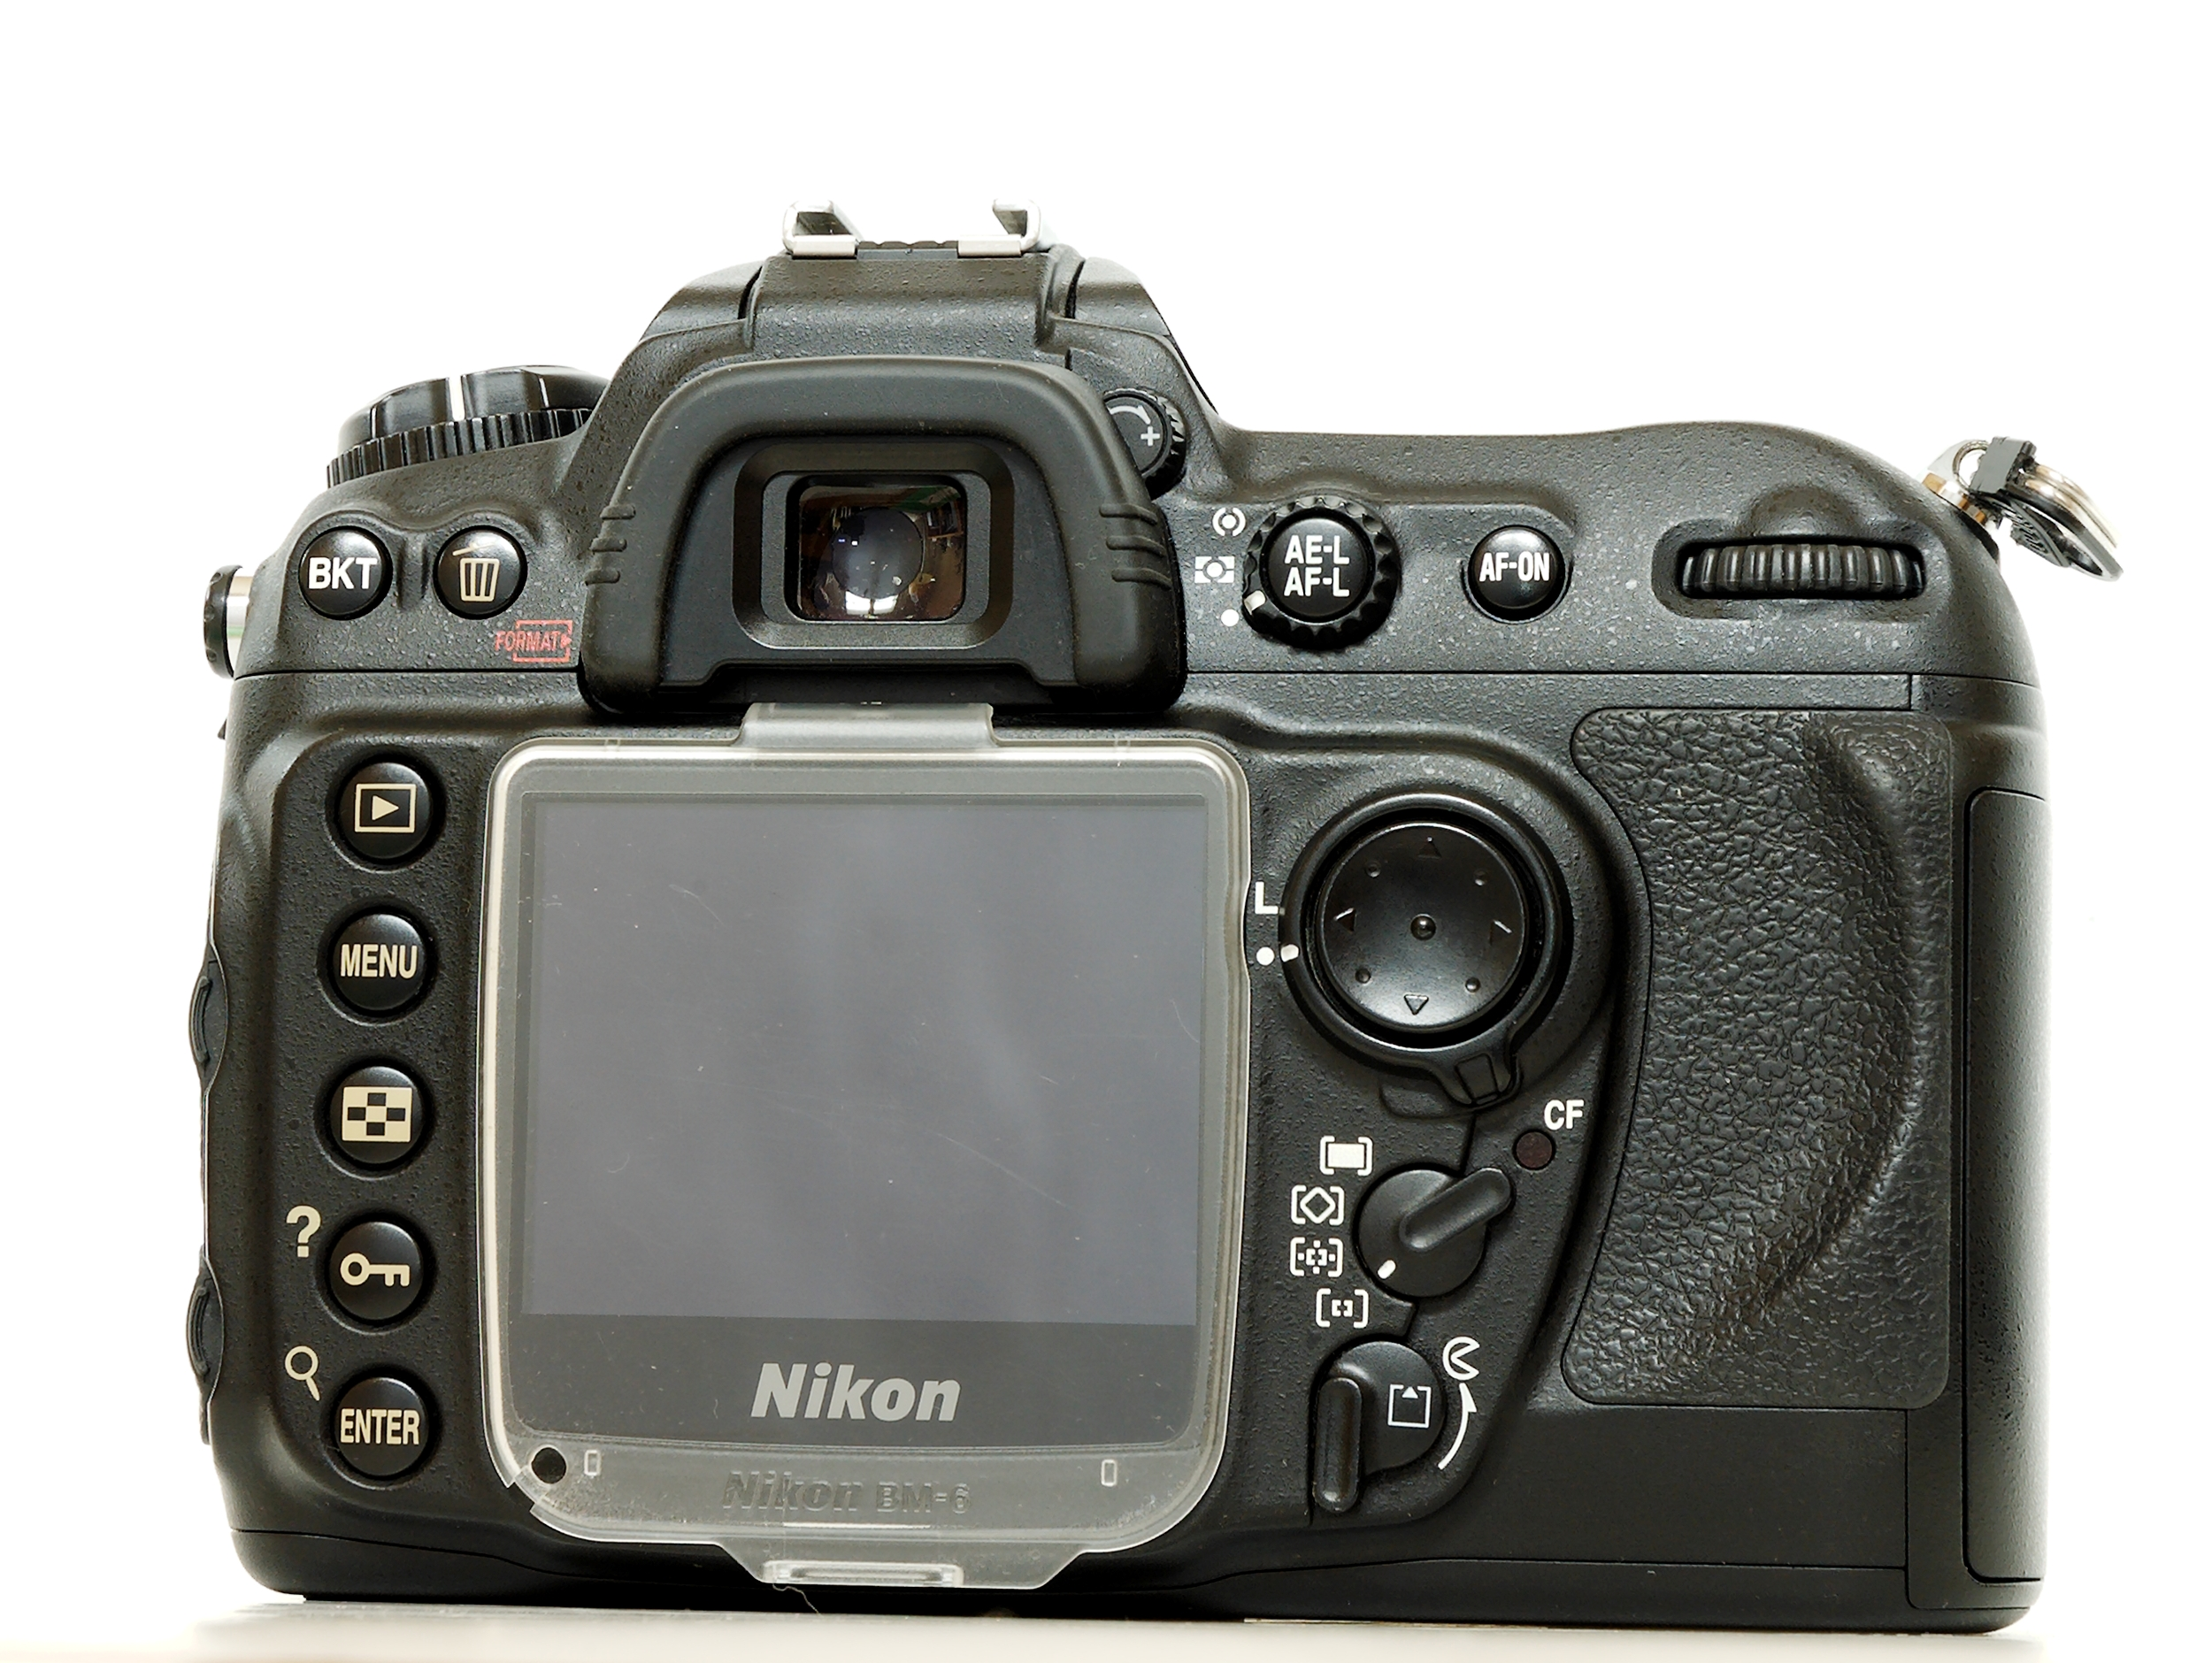 File:Nikon D200 body back.jpg - Wikimedia Commons